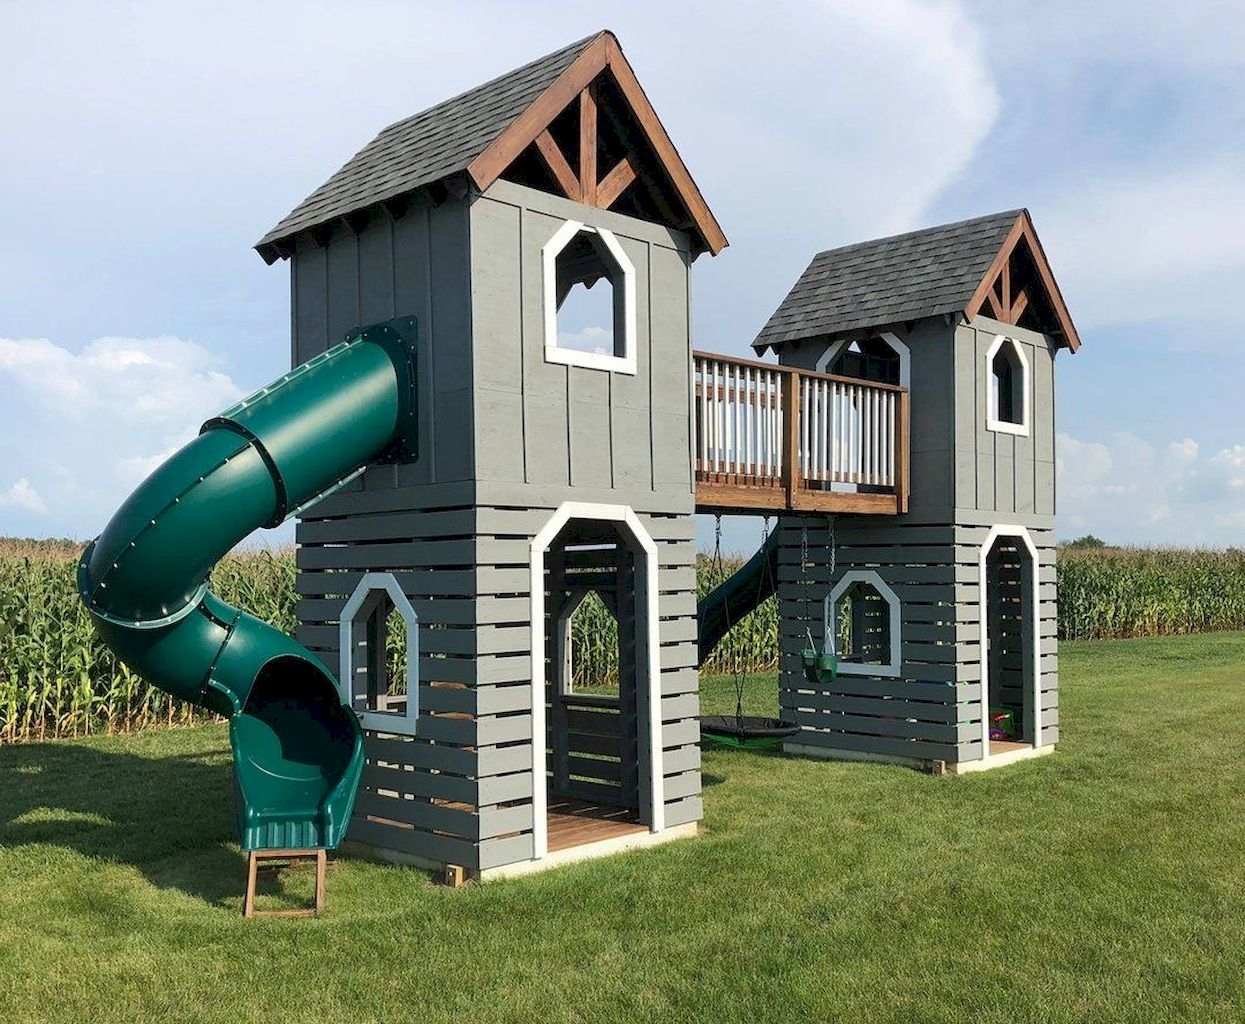 Glorious Playhouse Plan Into Your Existing Backyard Space